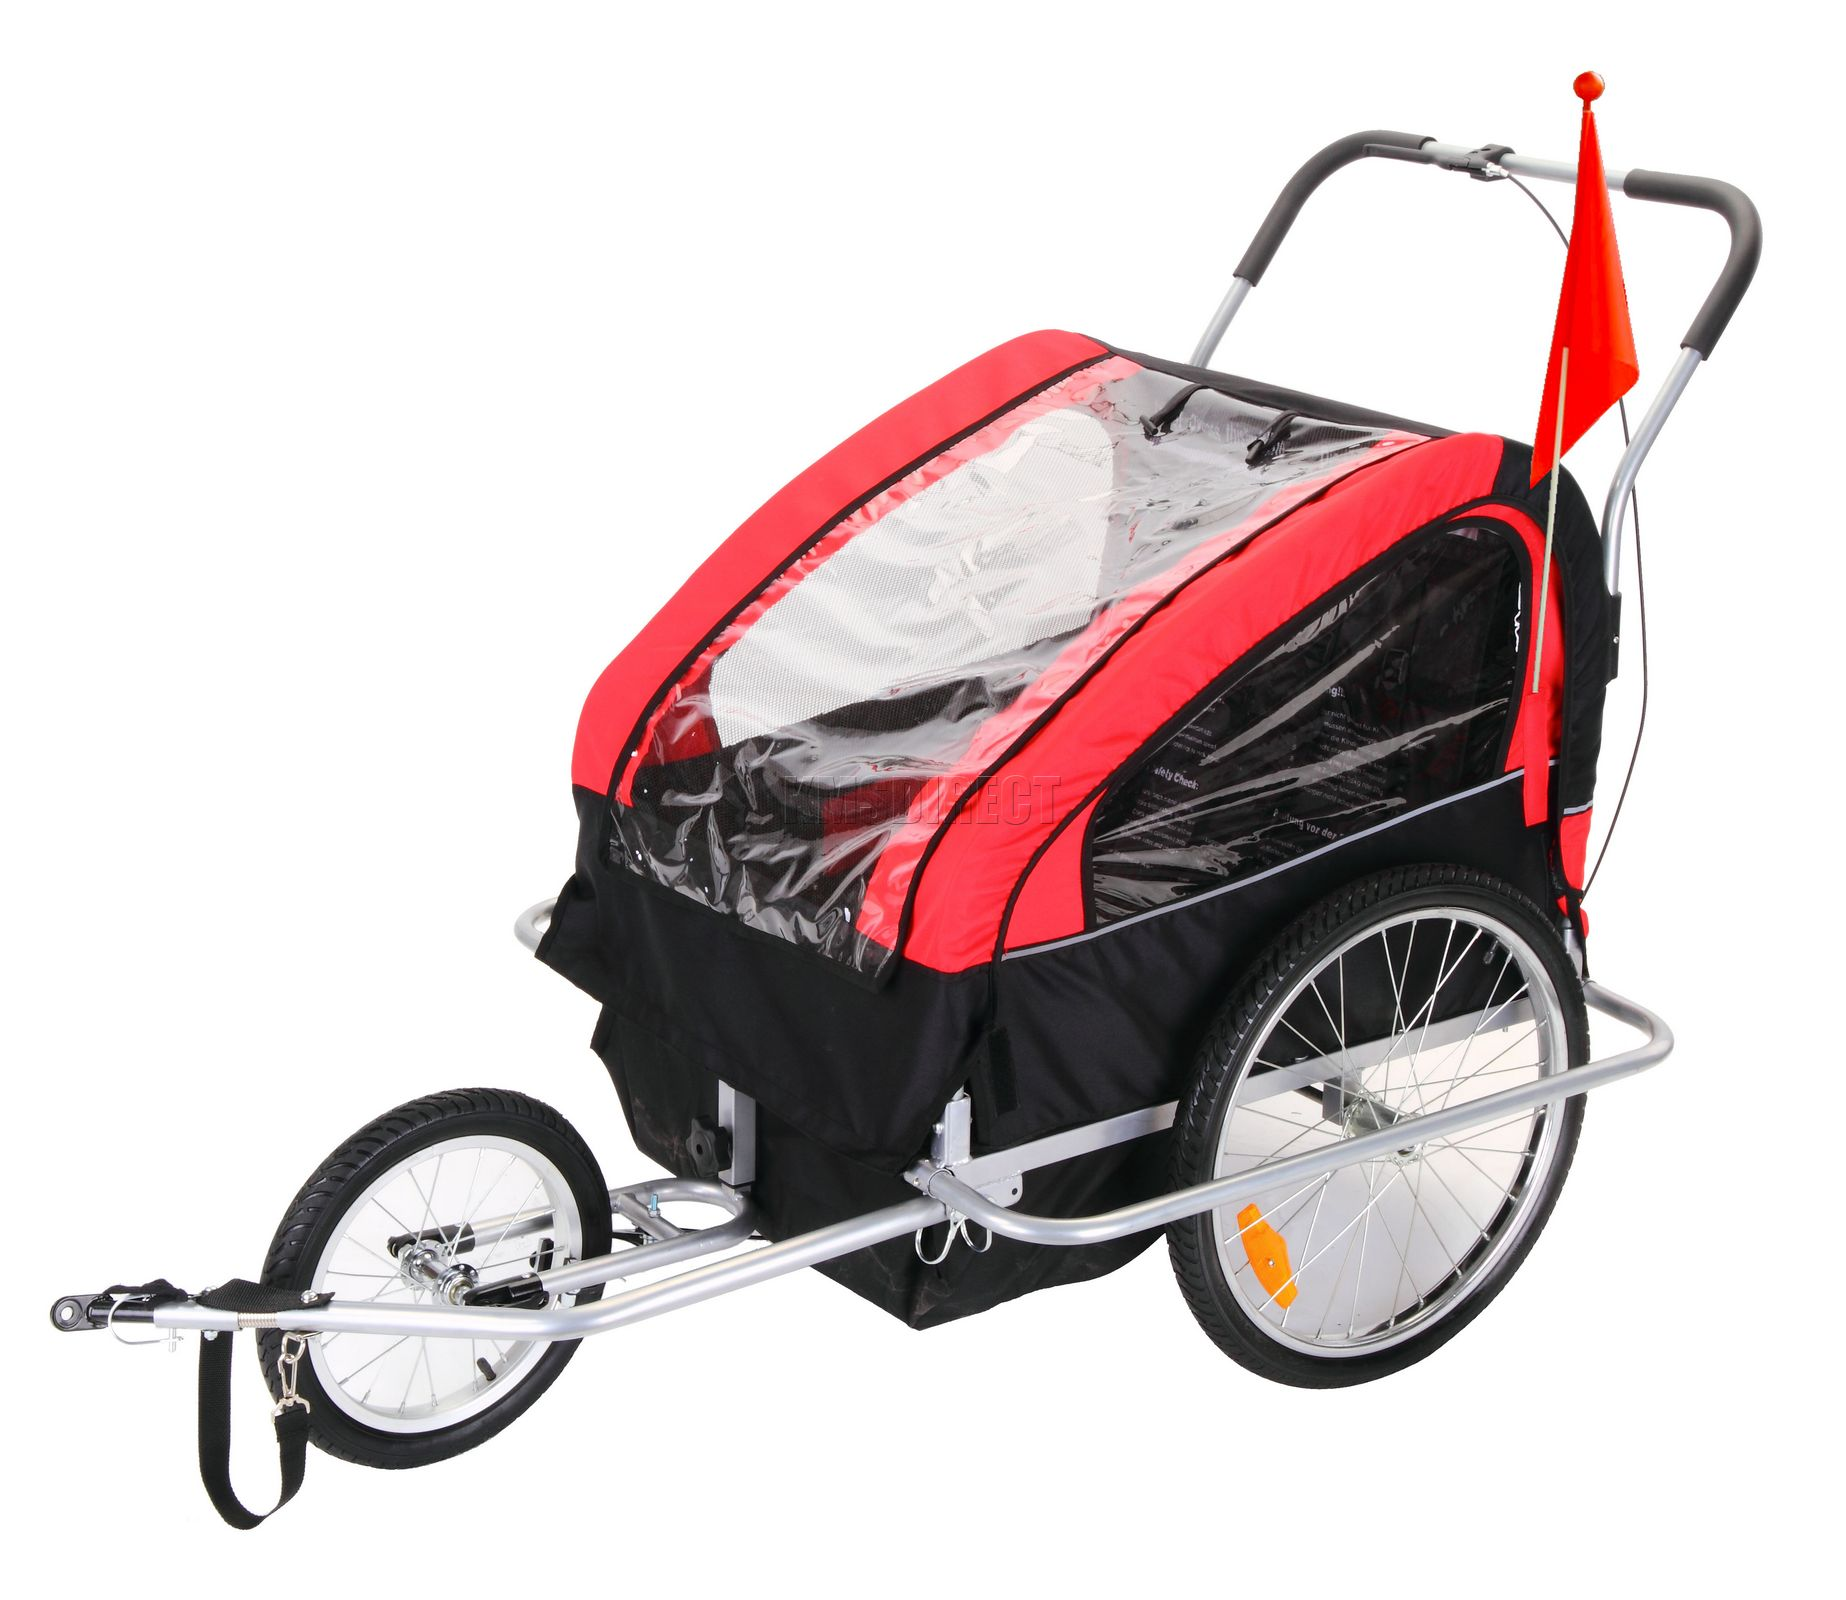 CHILD BIKE TRAILER CHILDREN STROLLER KIDS BICYCLE R/B | eBay